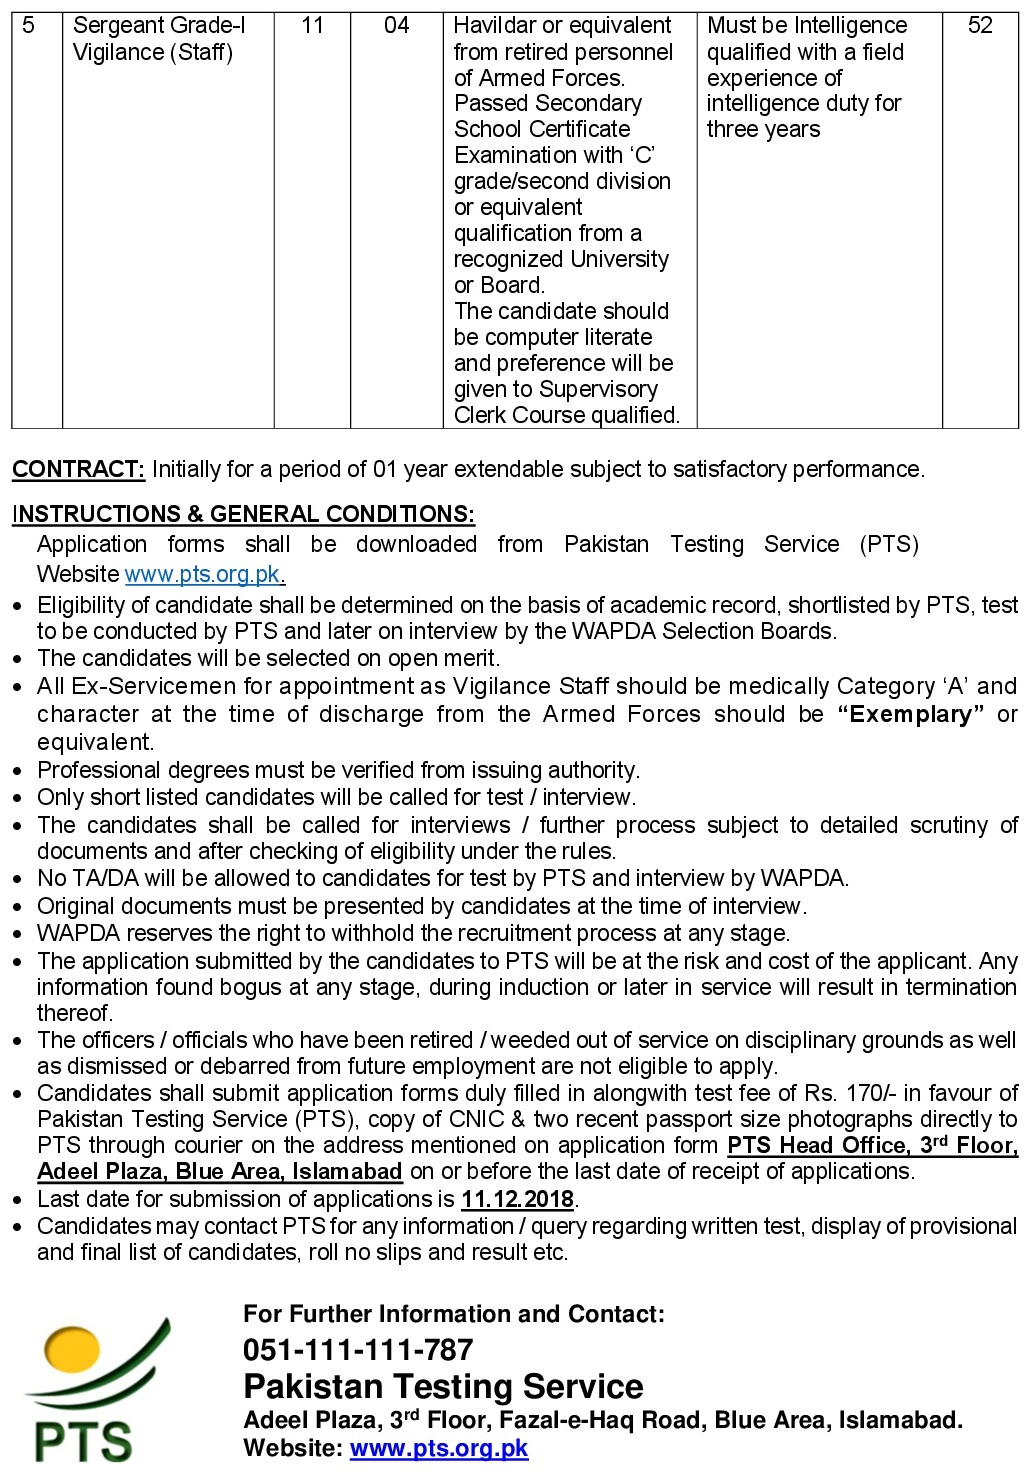 WAPDA Vigilance Directorate PTS Jobs 2021 Application Form